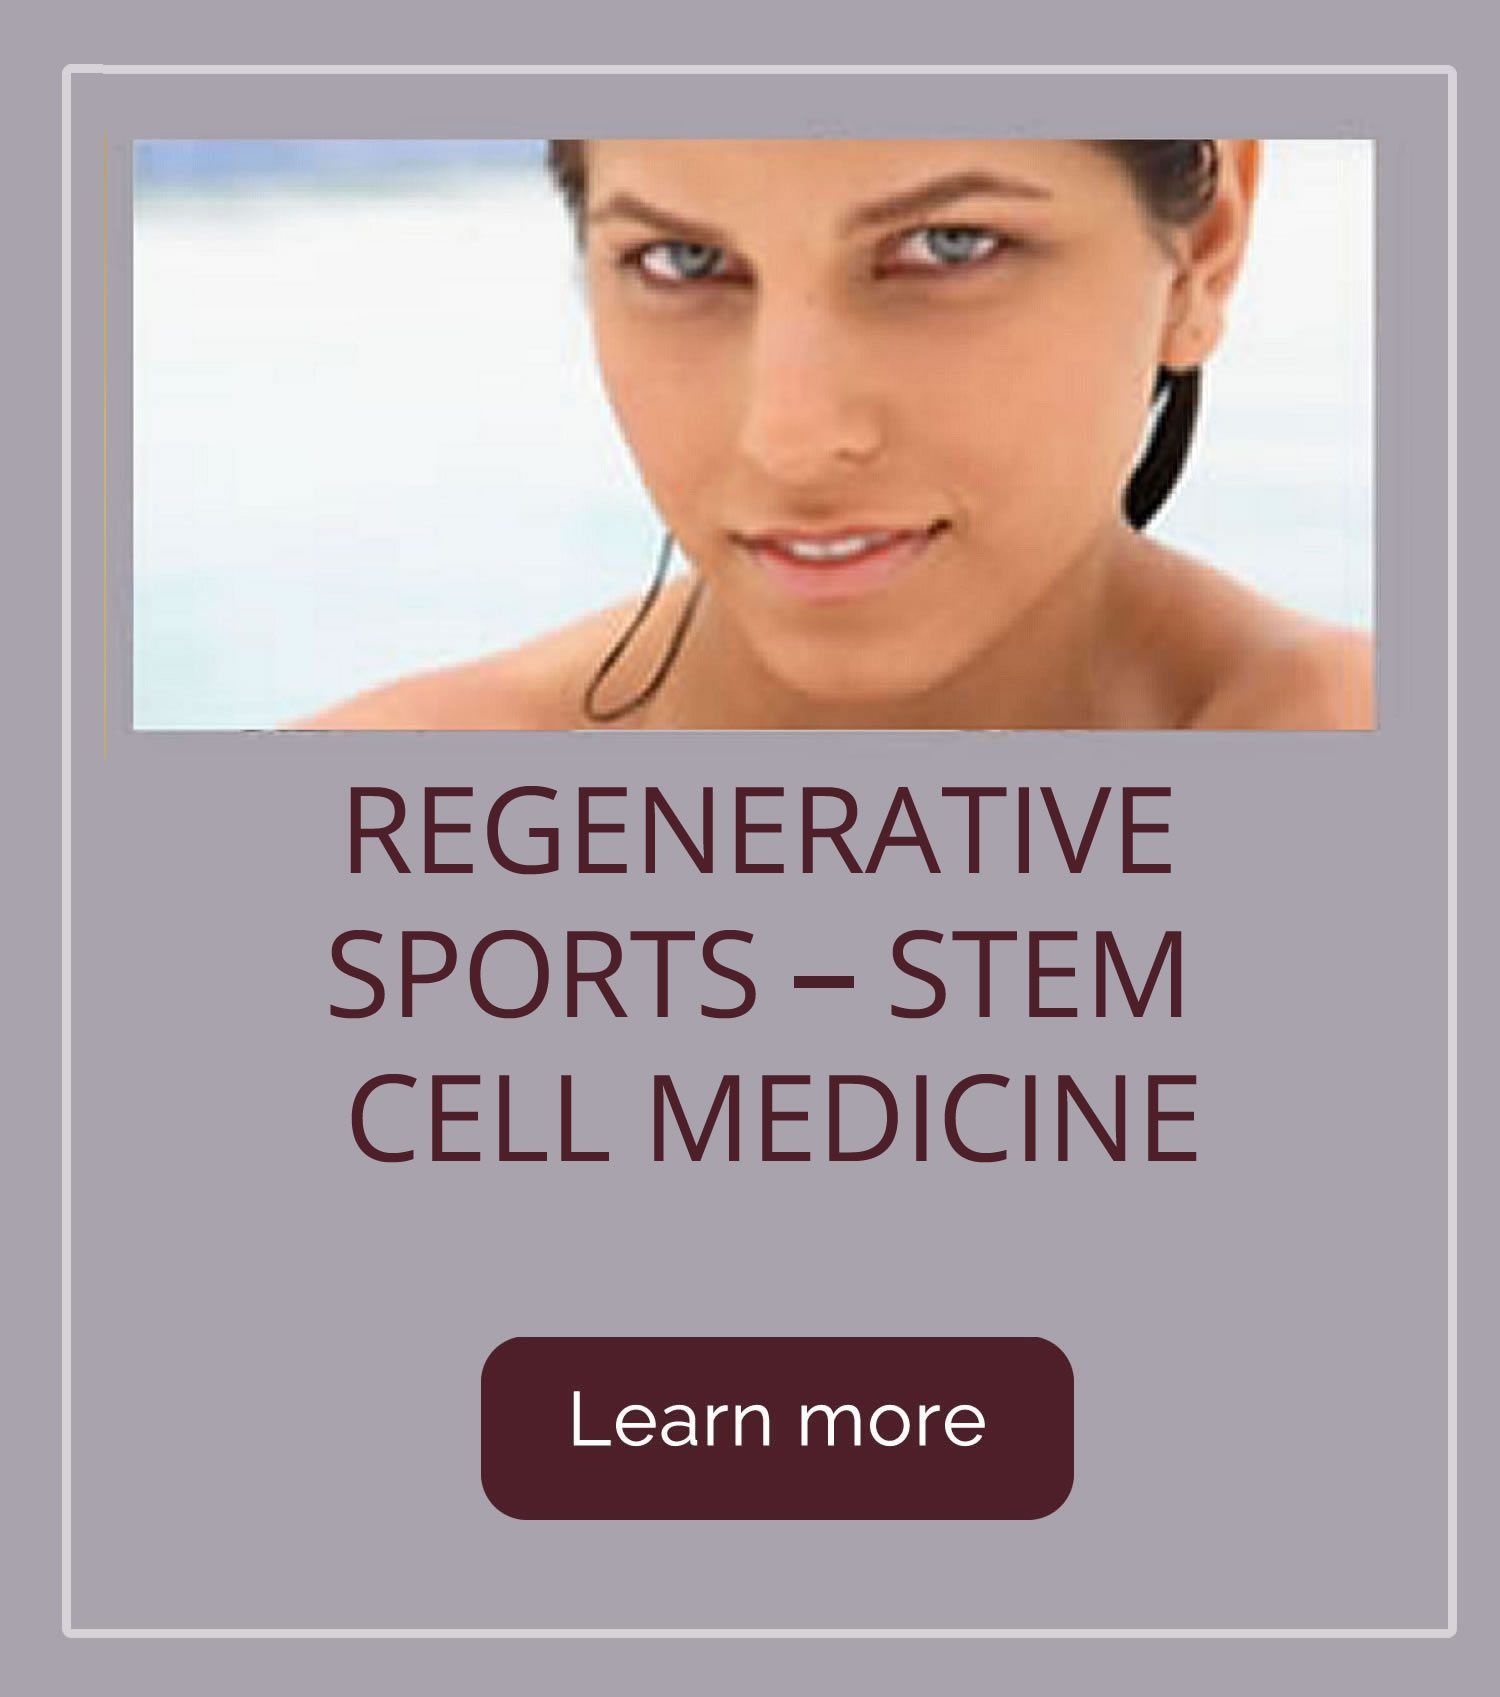 Regenerative Sports - Stem Cell Medicine